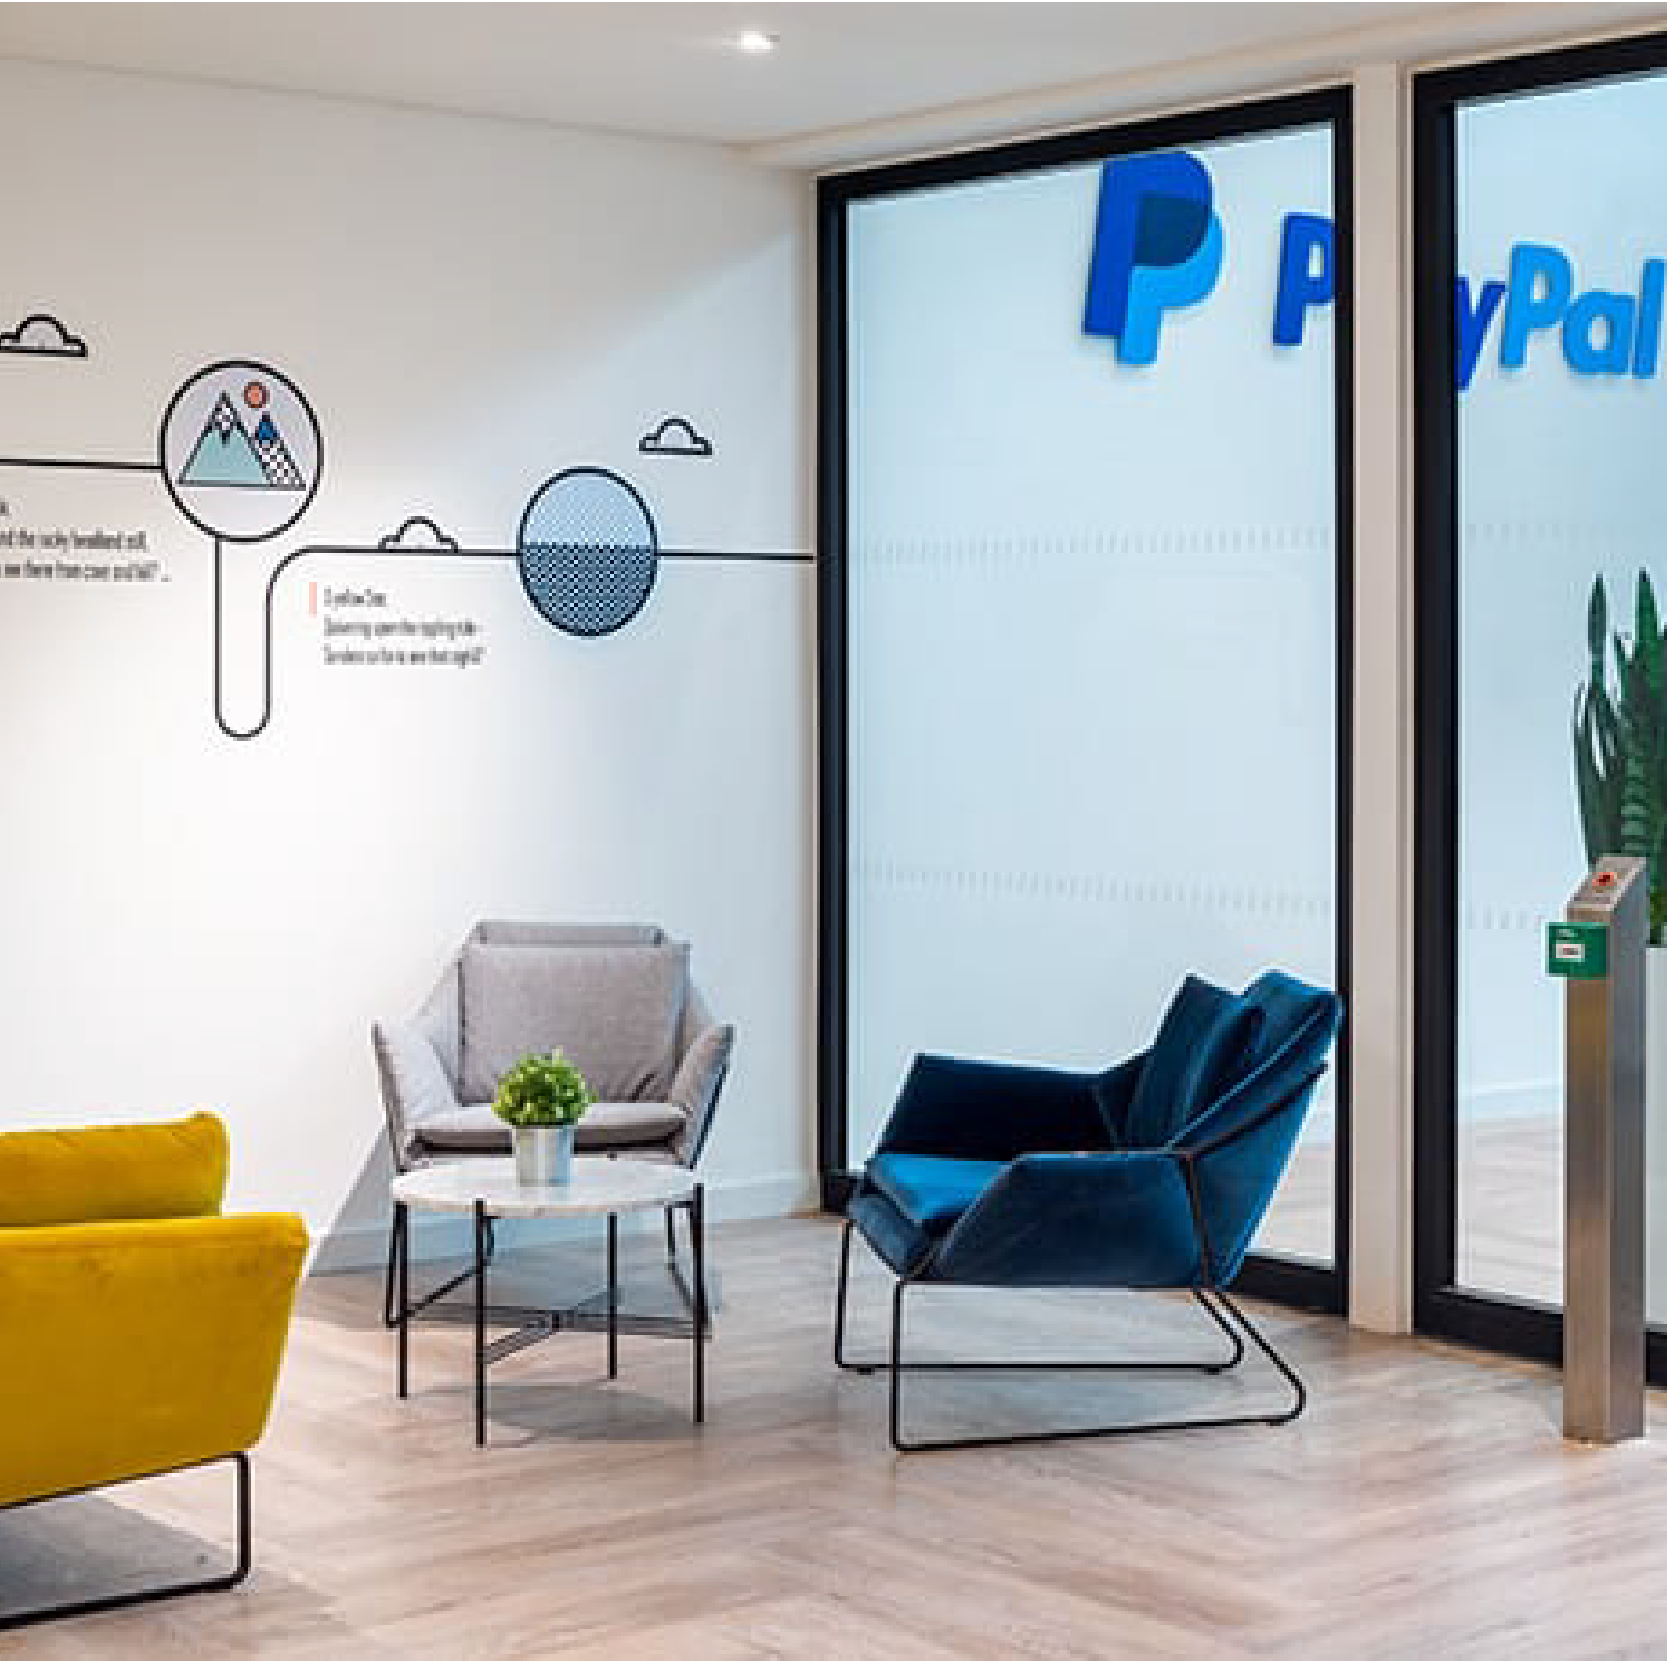 PayPal-Building-2